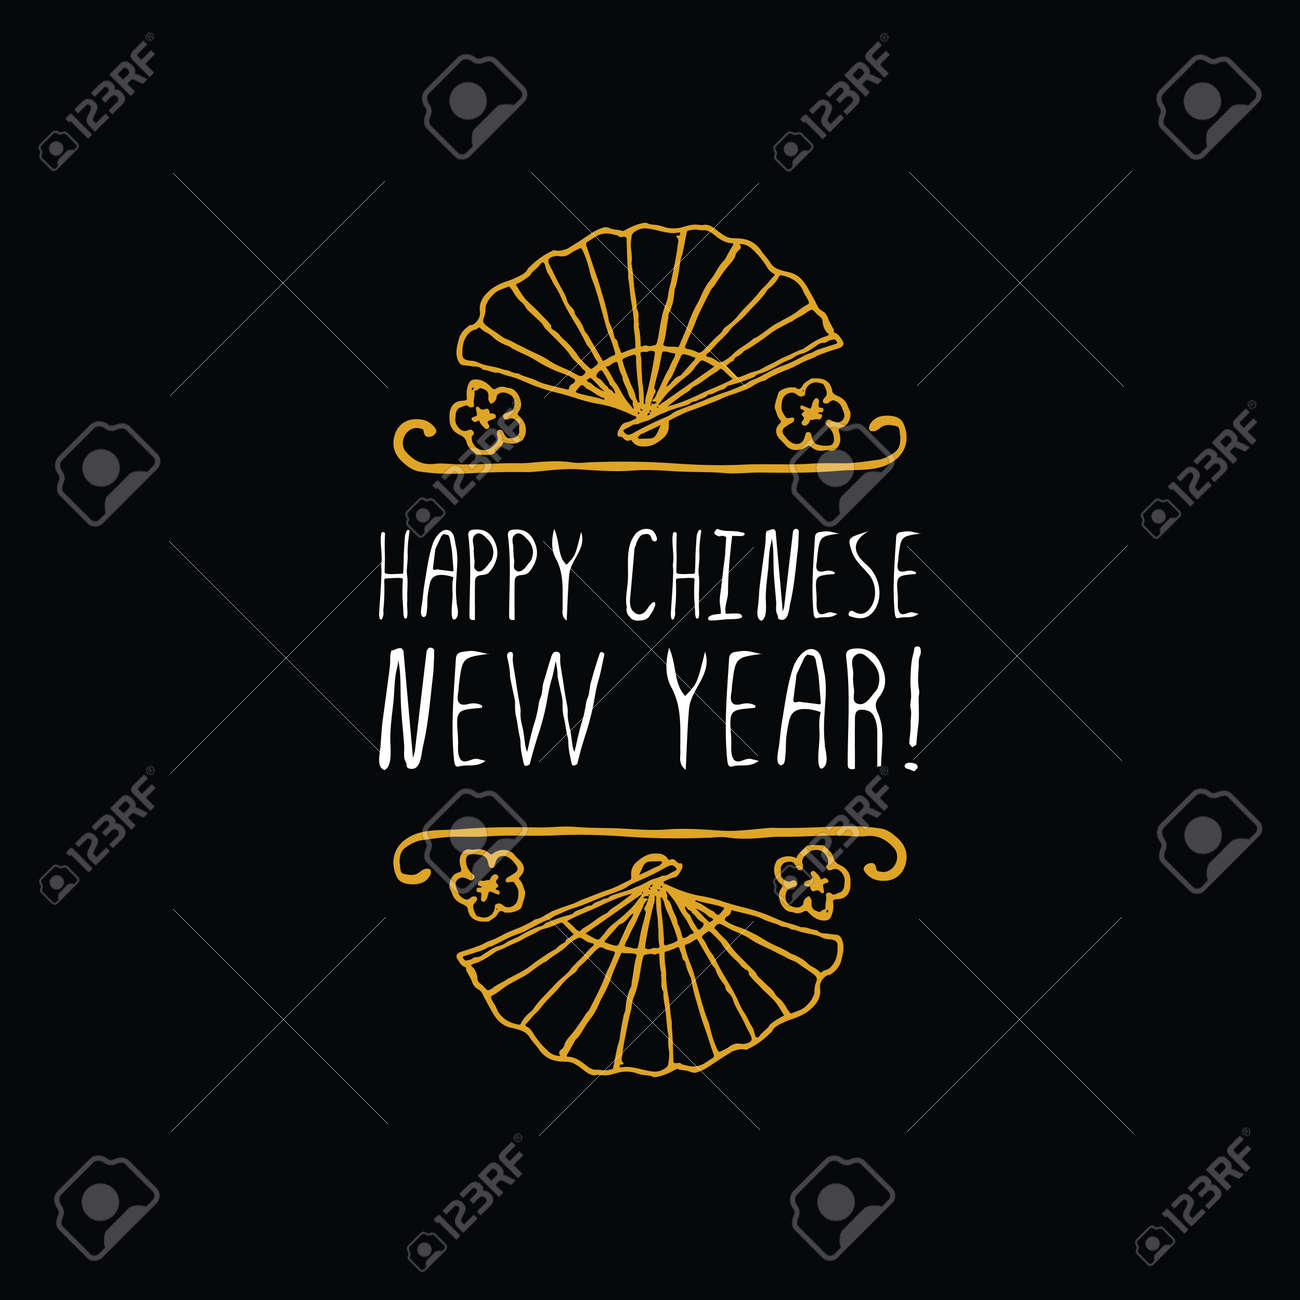 chinese new year greeting card poster template with doodle chinese lantern and text on chalkboard